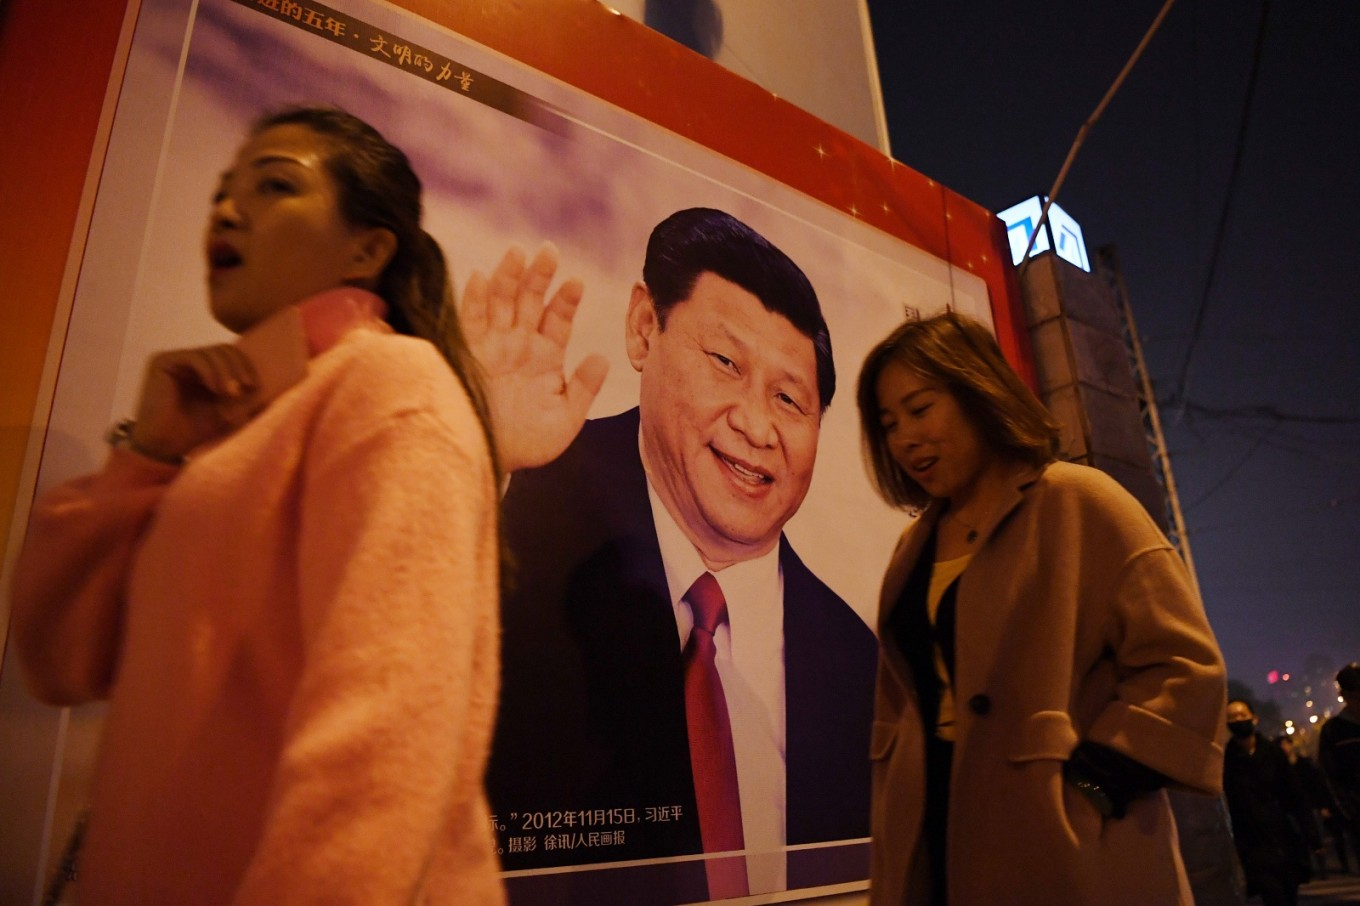 Chinese woman 'detained' after tossing ink on Xi poster: activists